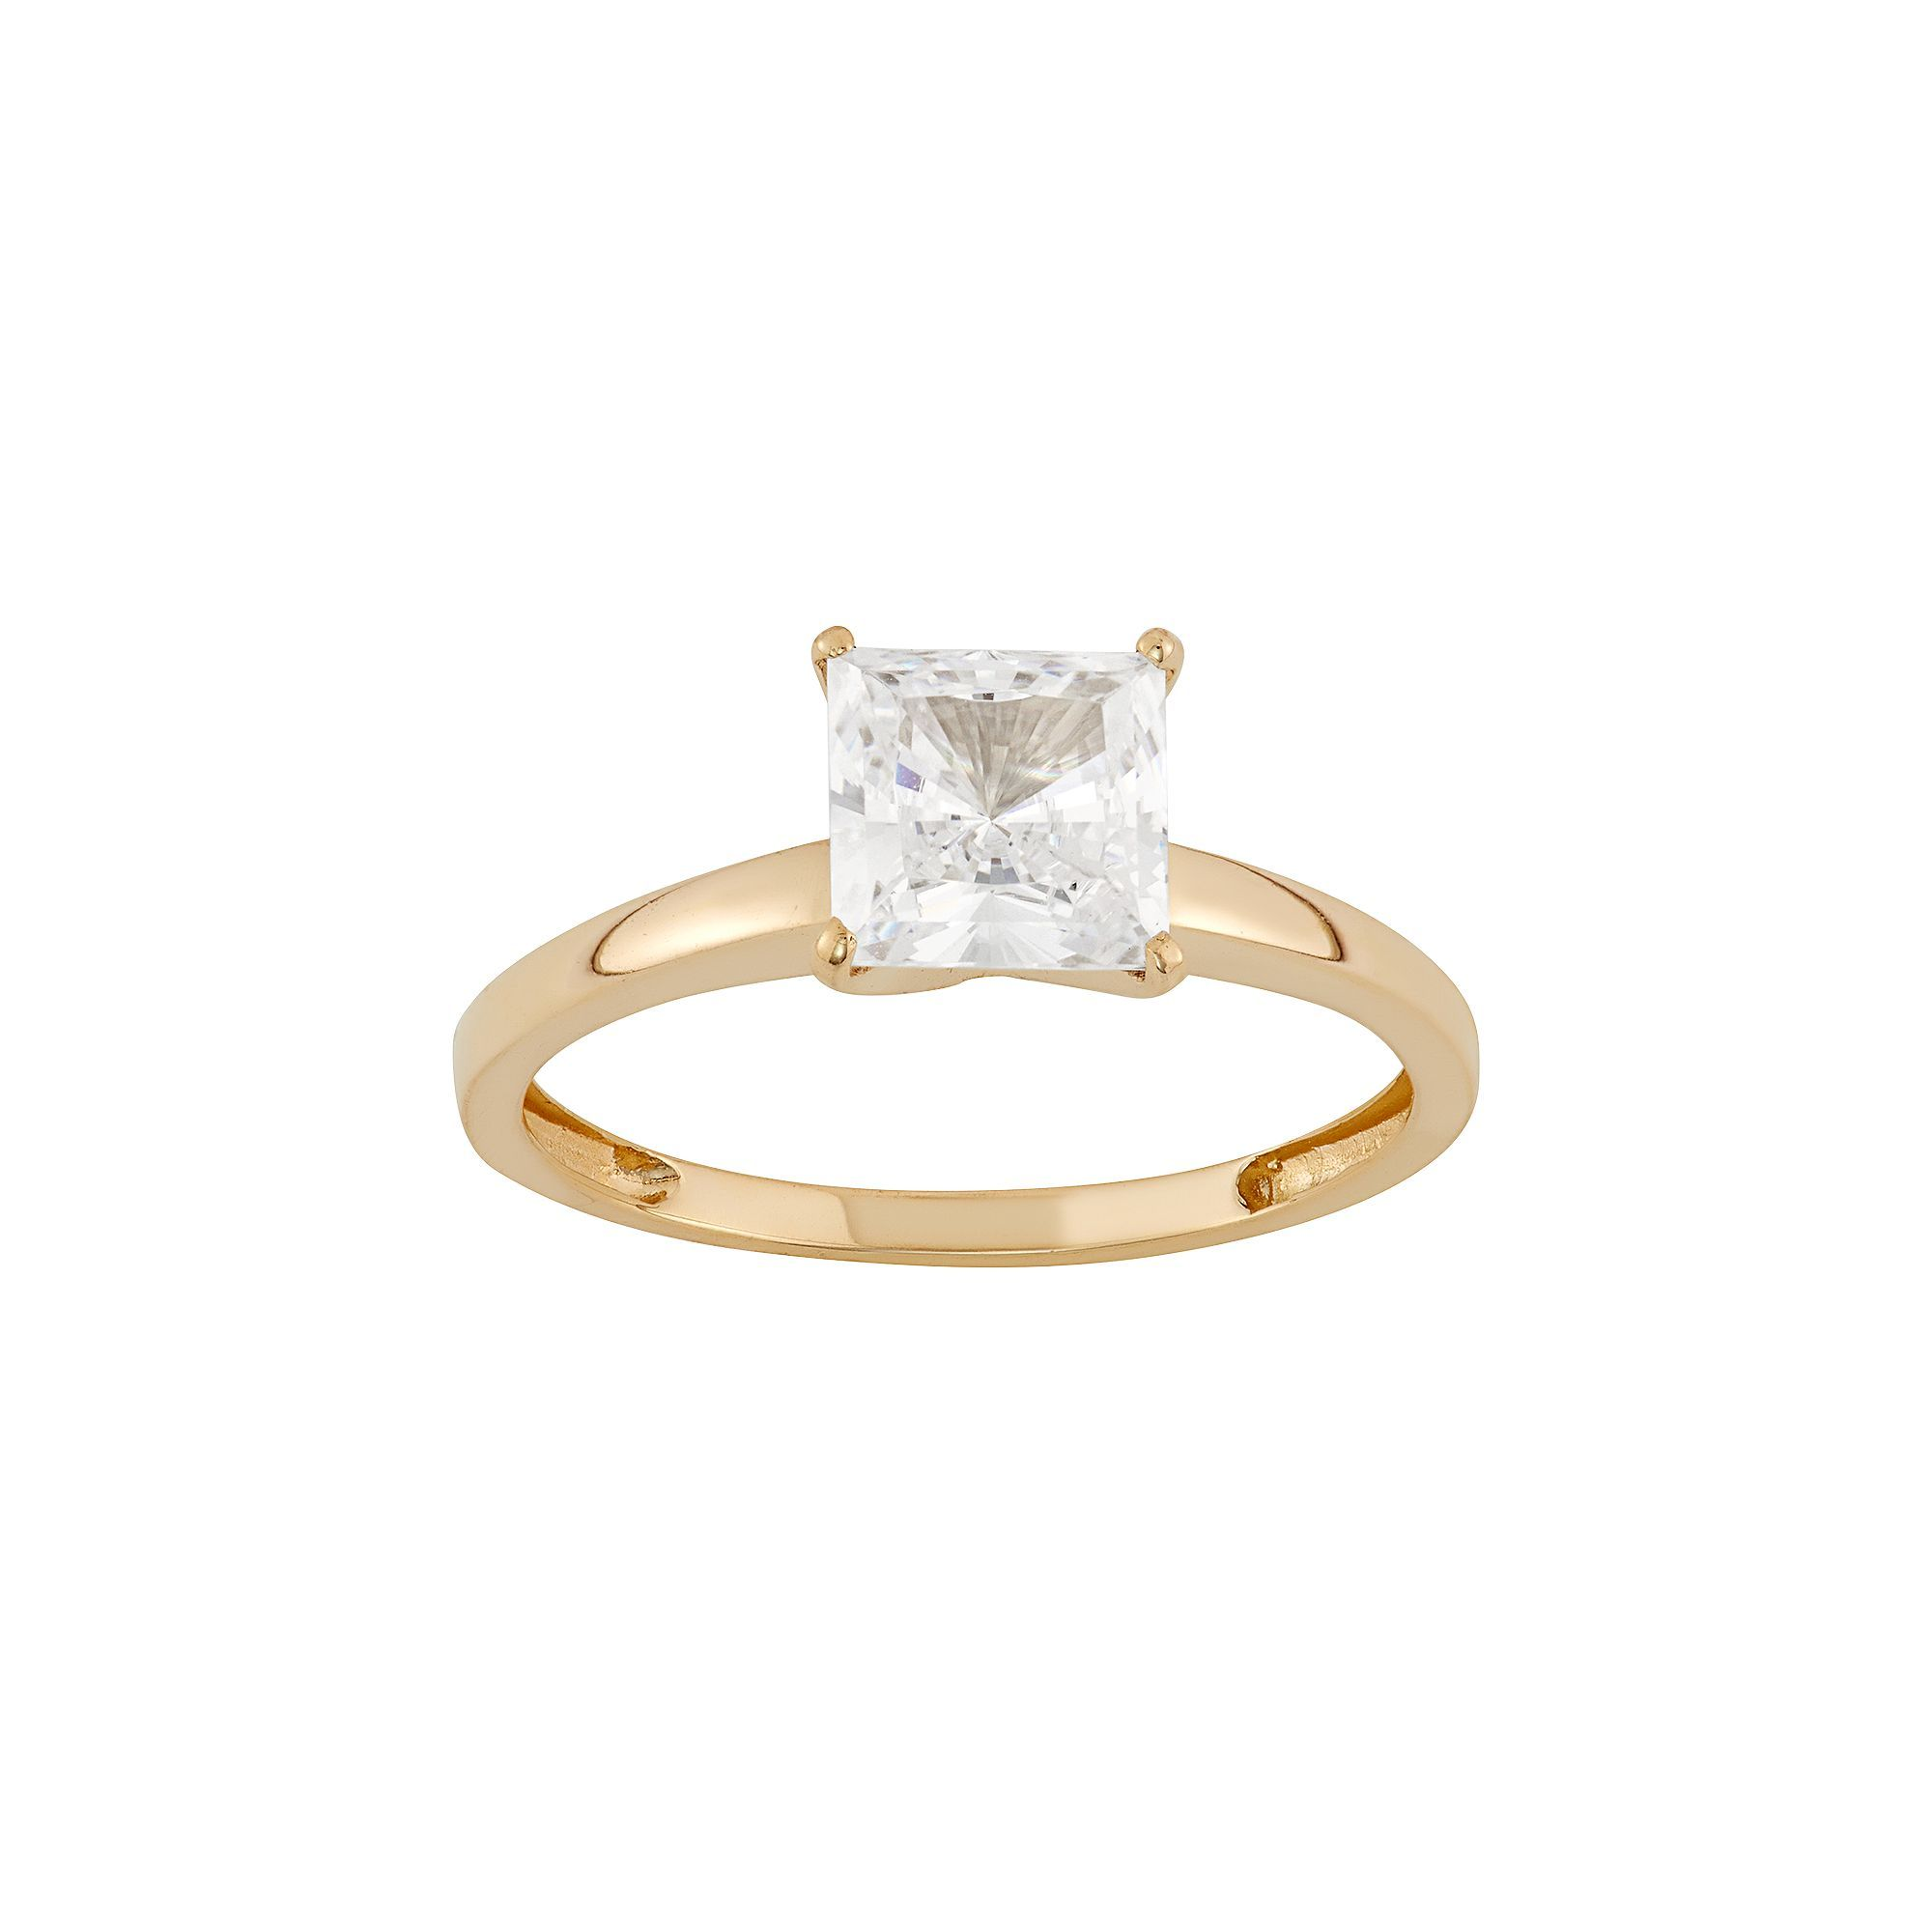 6a8b5b2a6da03 10k Gold Cubic Zirconia Solitaire Engagement Ring | Products ...